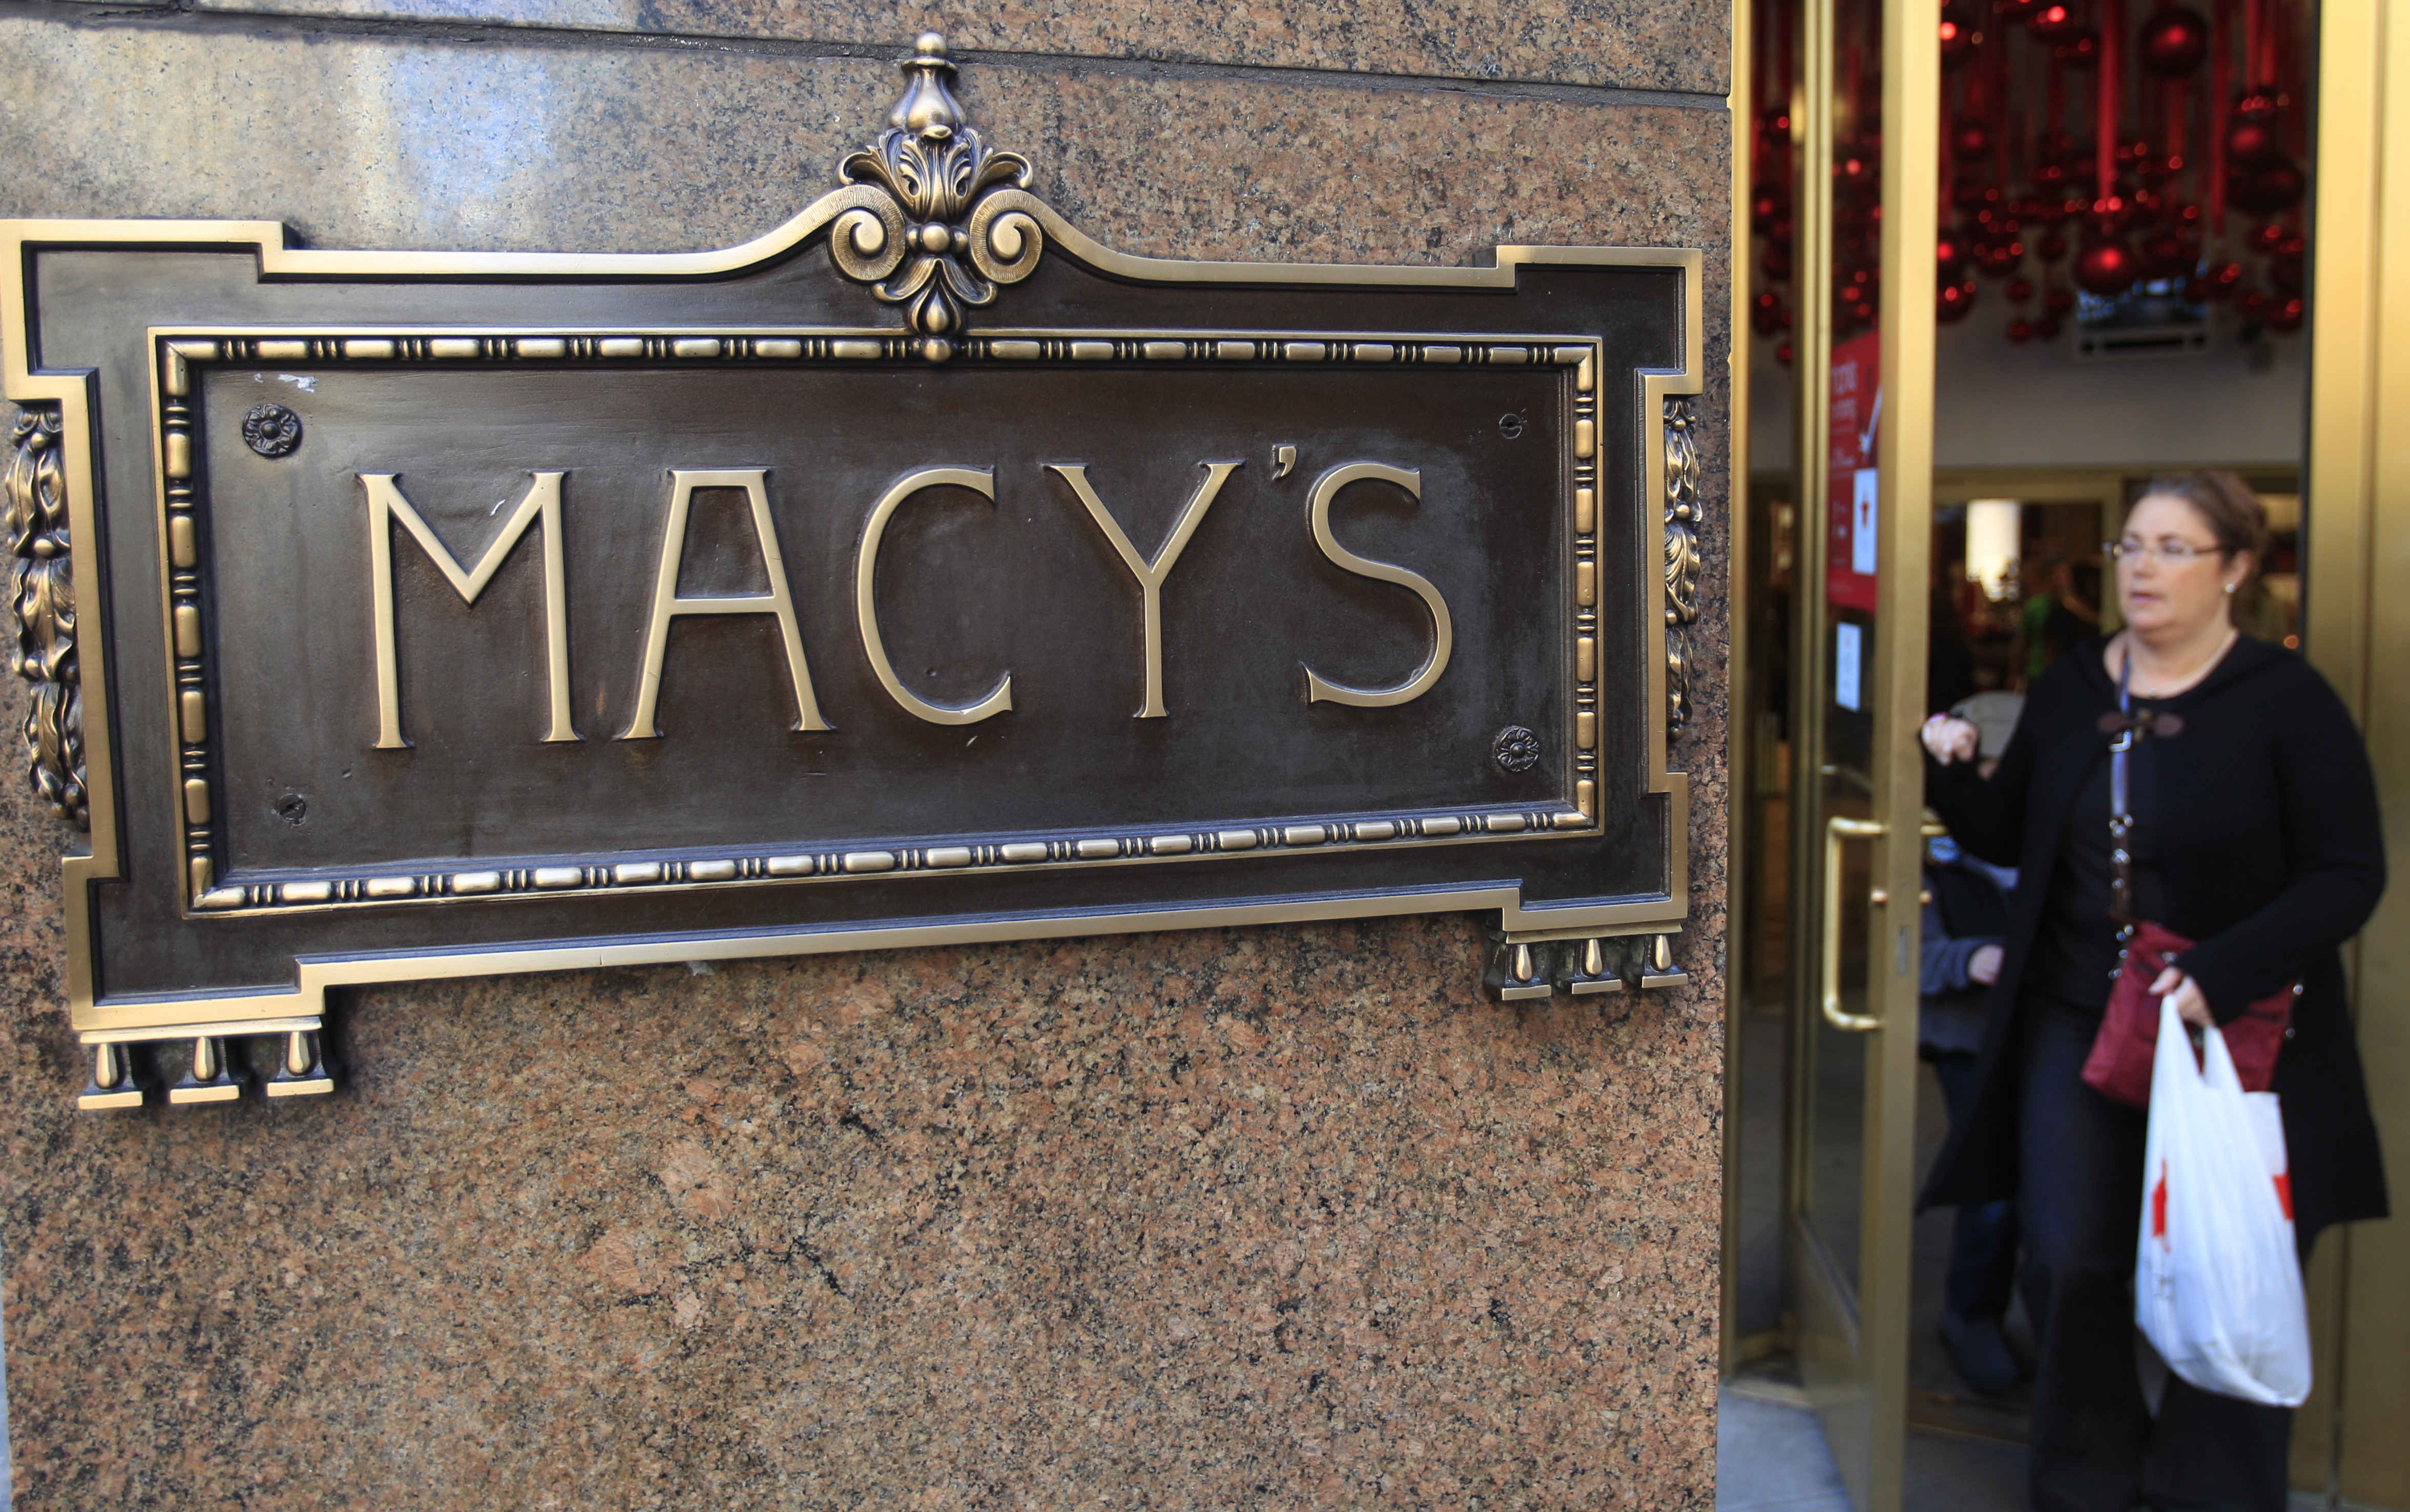 Macy's and Bloomingdale's will stop selling fur products soon